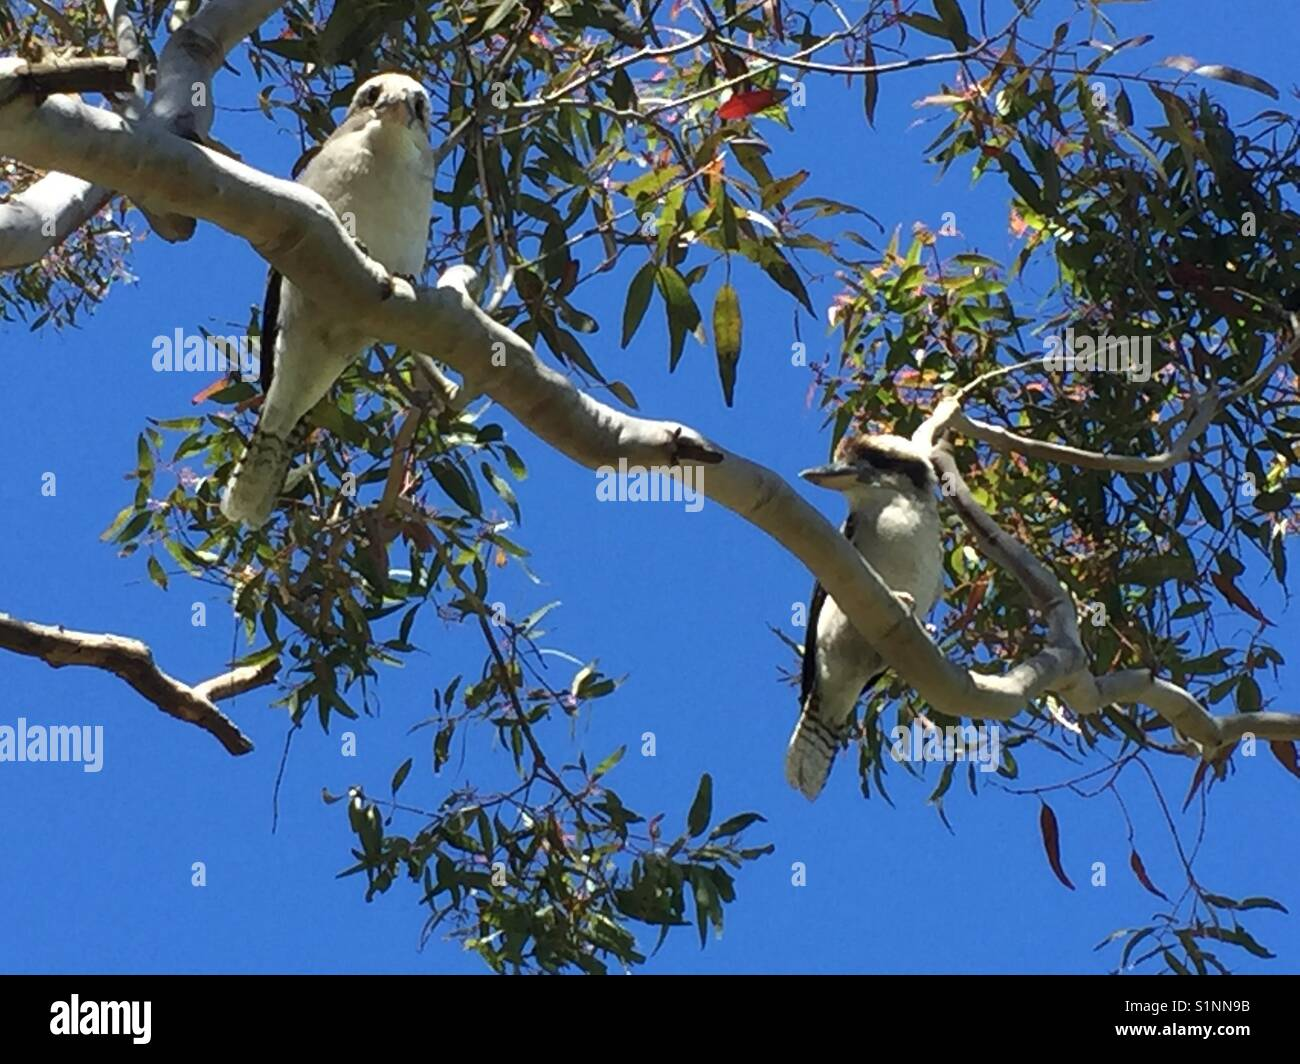 Two birds sitting in a tree - Stock Image